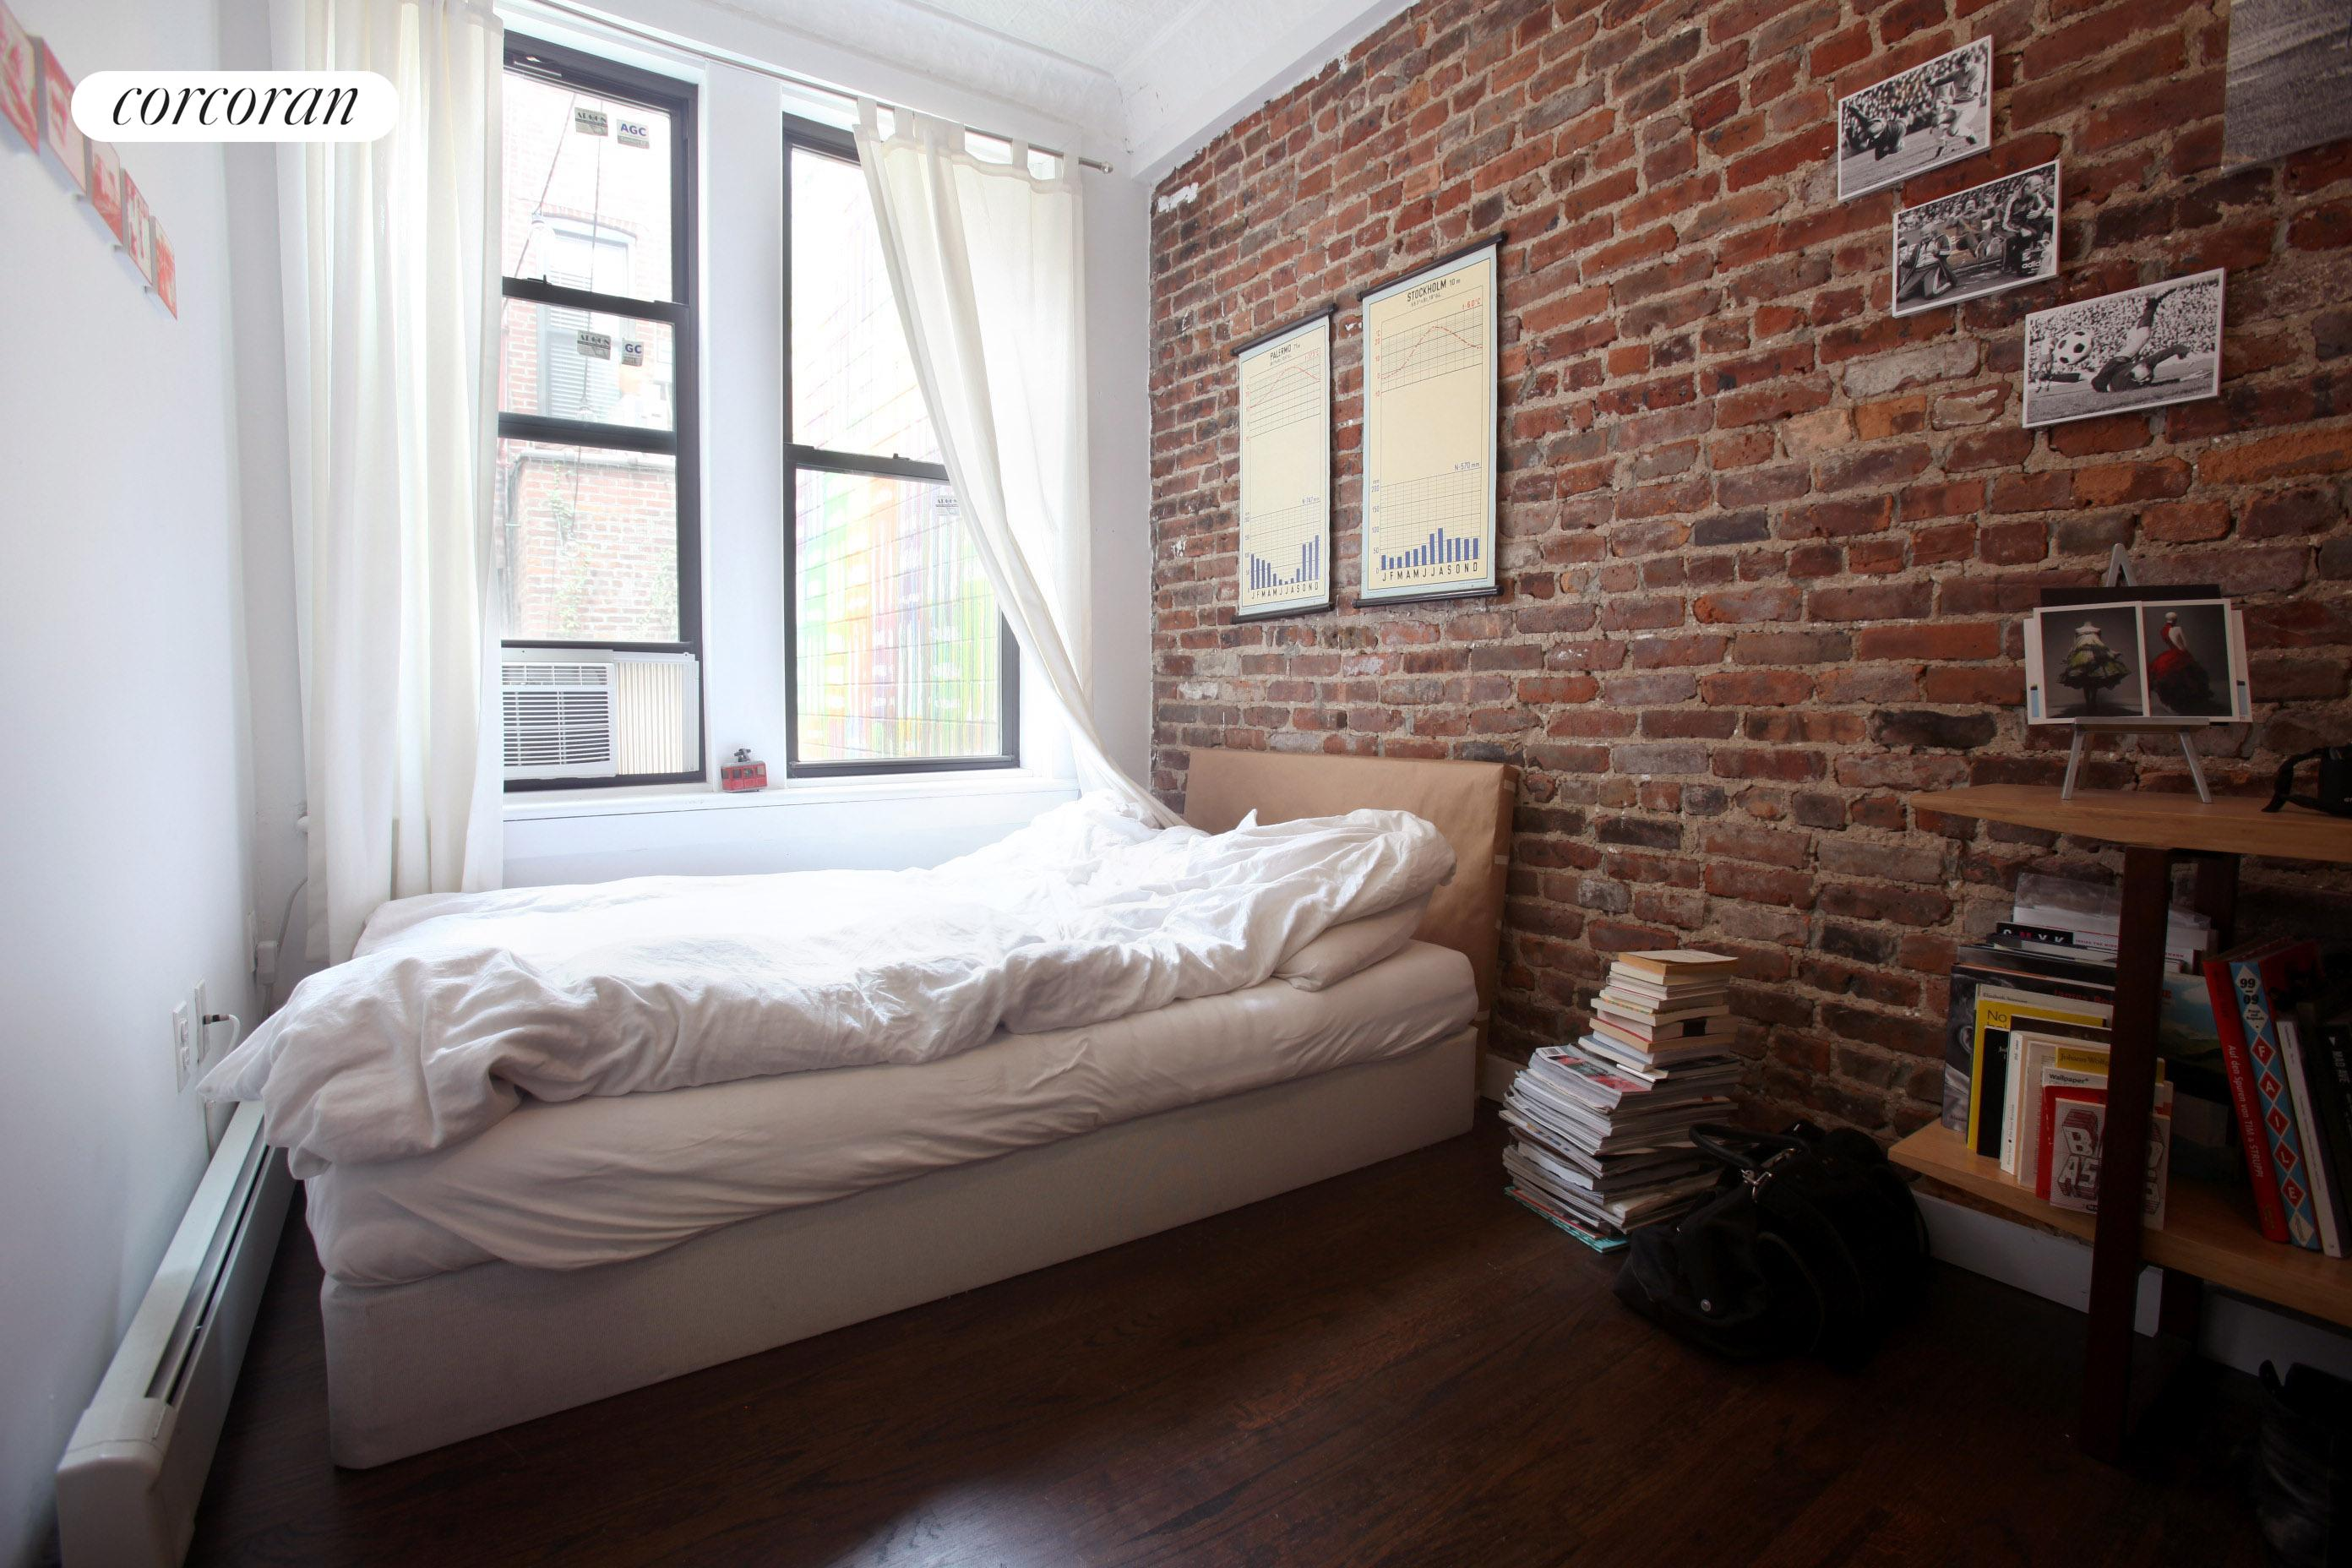 corcoran 32 frost street apt 1 williamsburg rentals brooklyn rentals williamsburg rental. Black Bedroom Furniture Sets. Home Design Ideas